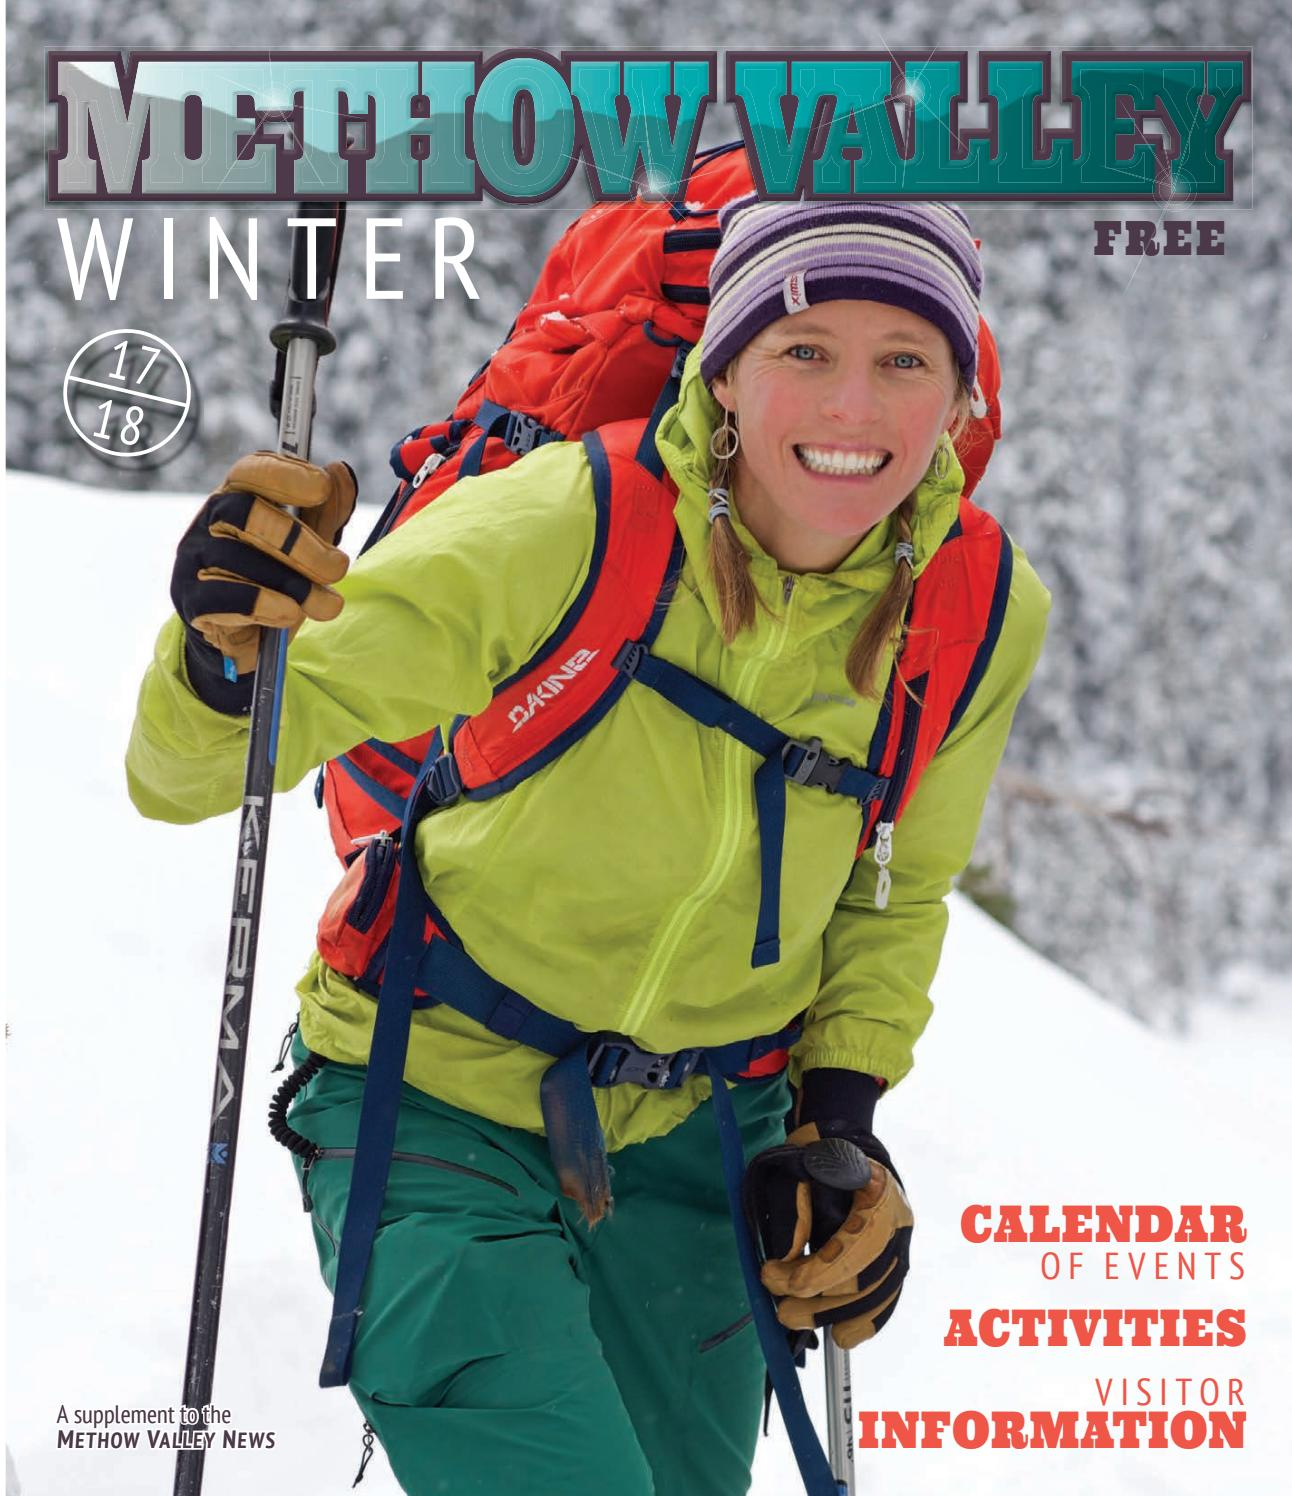 2017/2018 Methow Valley Winter Guide by Methow Valley News